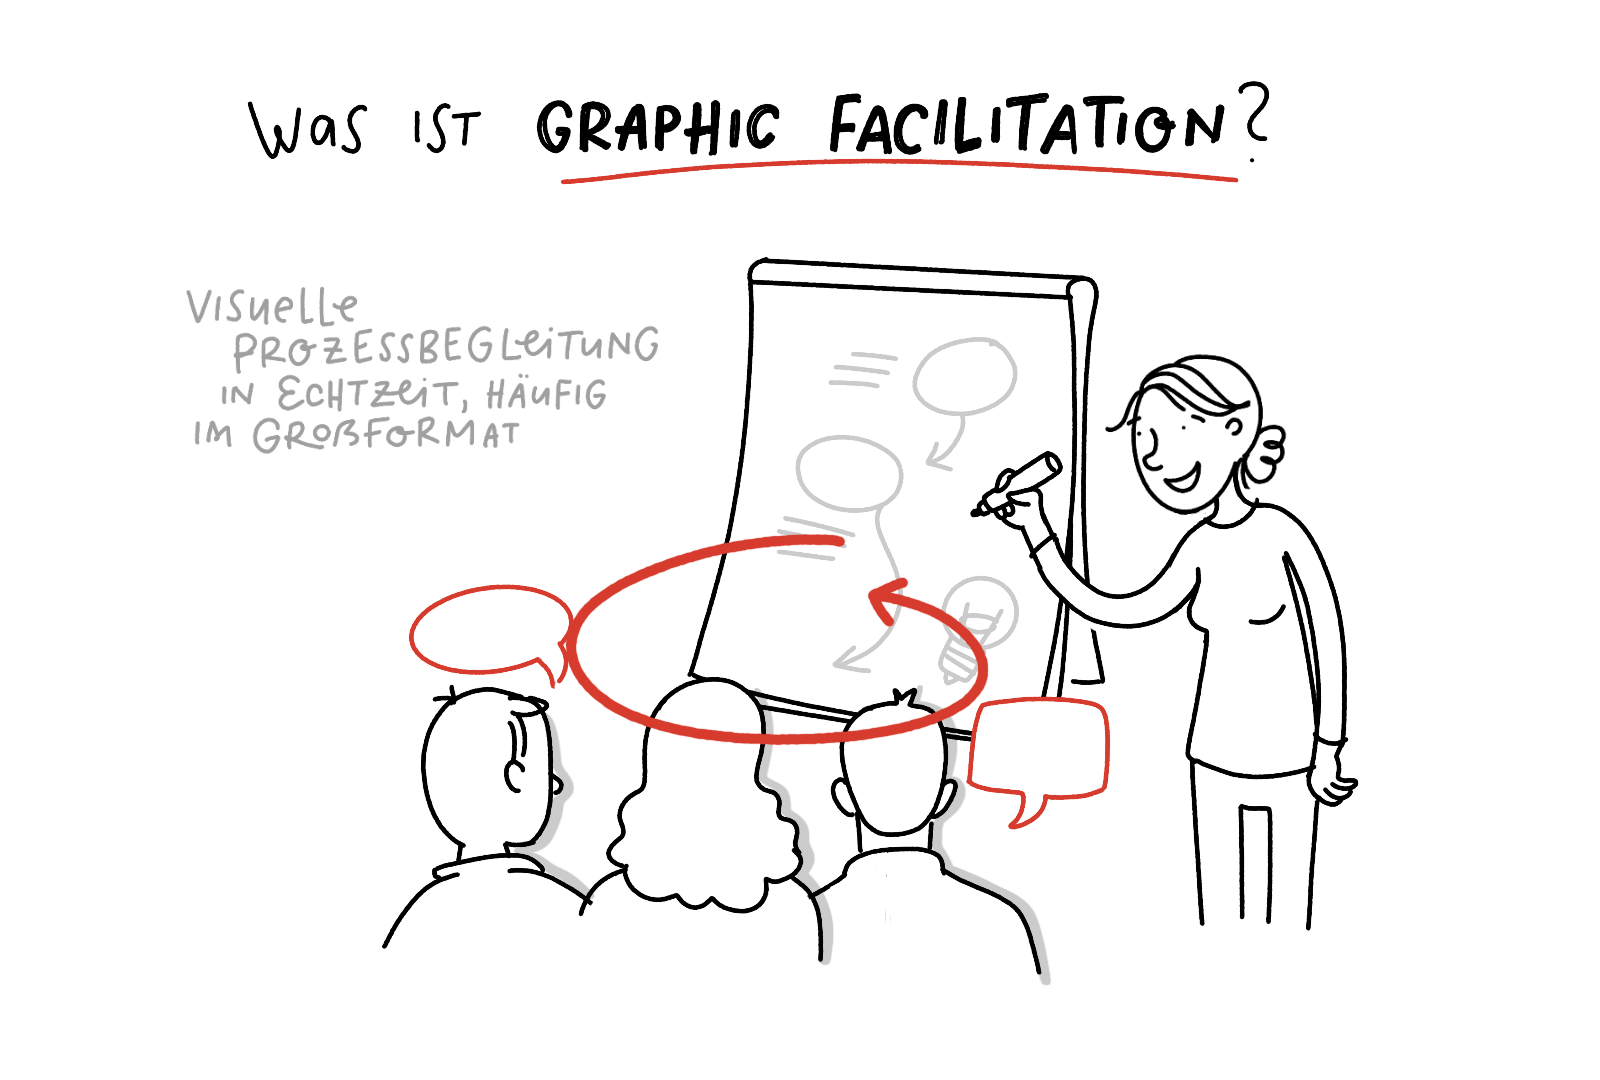 Sketchnotes – Was ist Graphic Faciliation